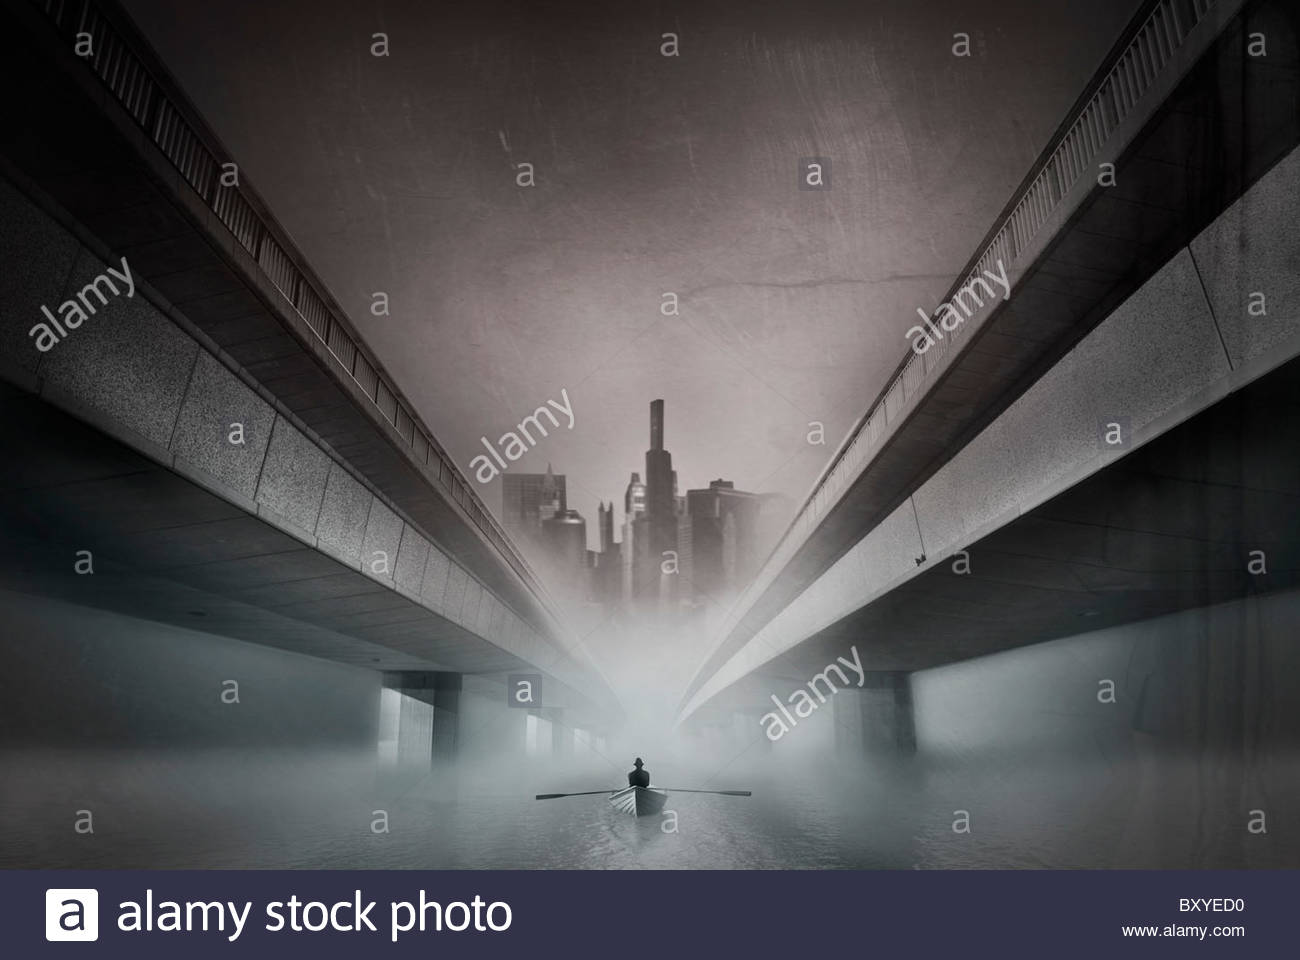 Conceptual image of male figure rowing a boat in an urban environment - Stock Image